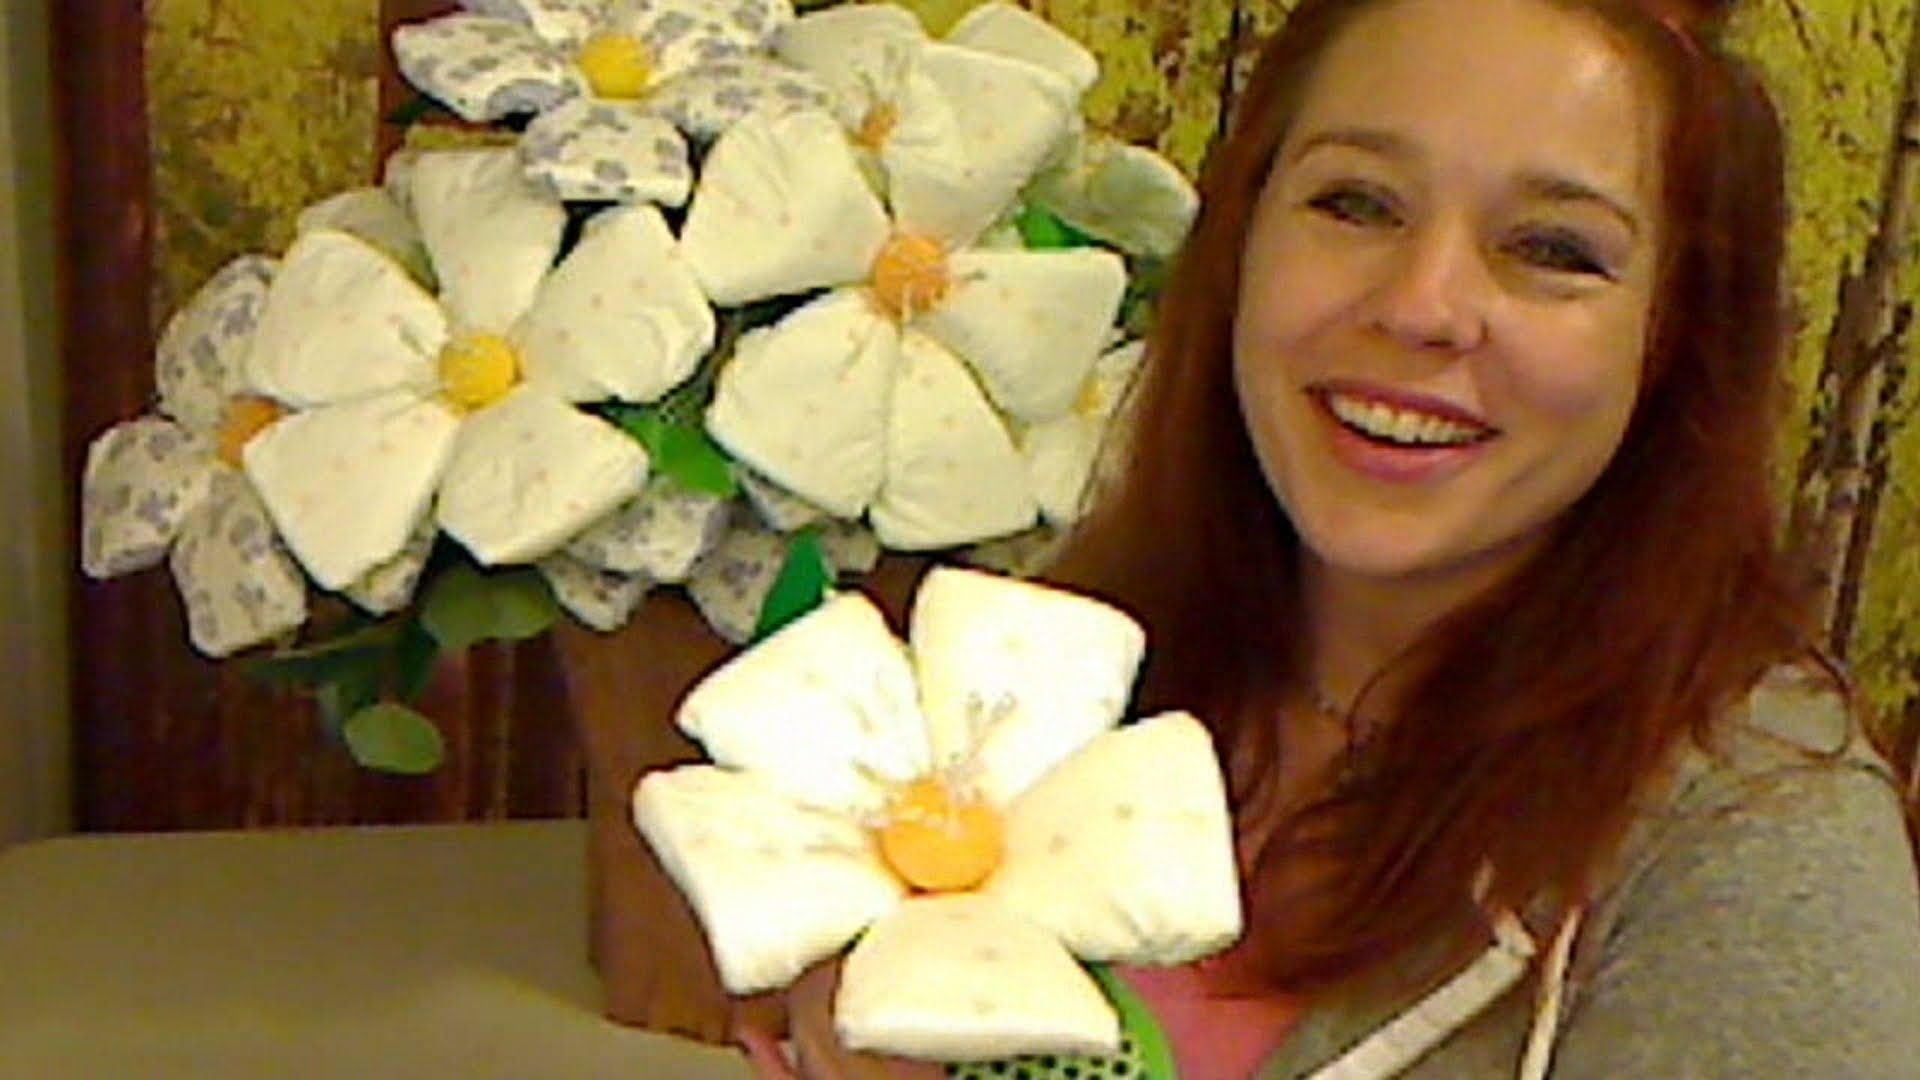 How To Make Diaper Flowers | Gifts | Pinterest | Diapers ...